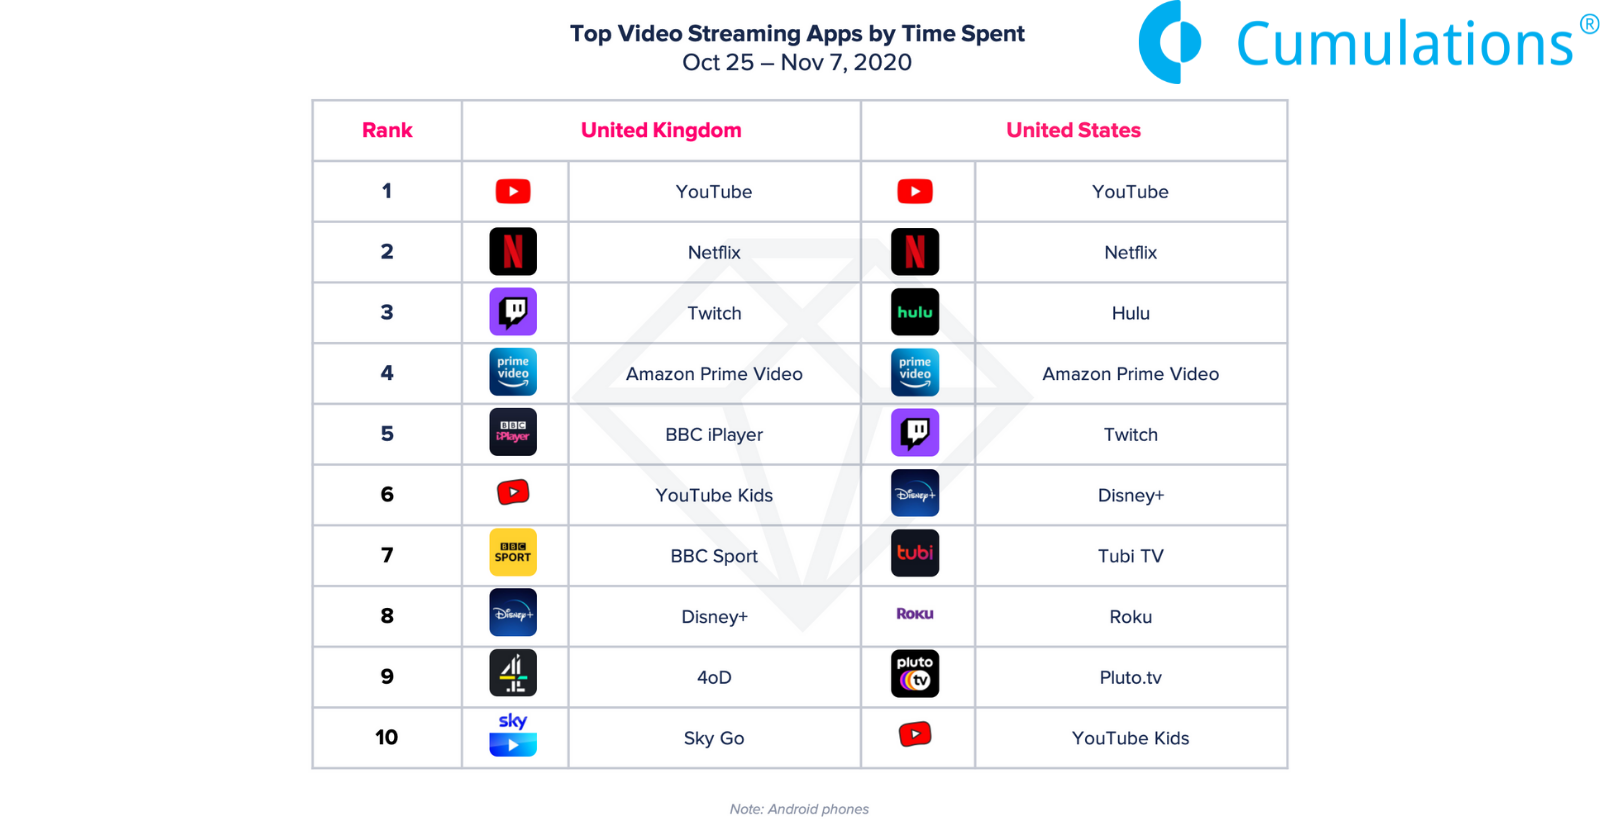 Top Video Streaming Apps